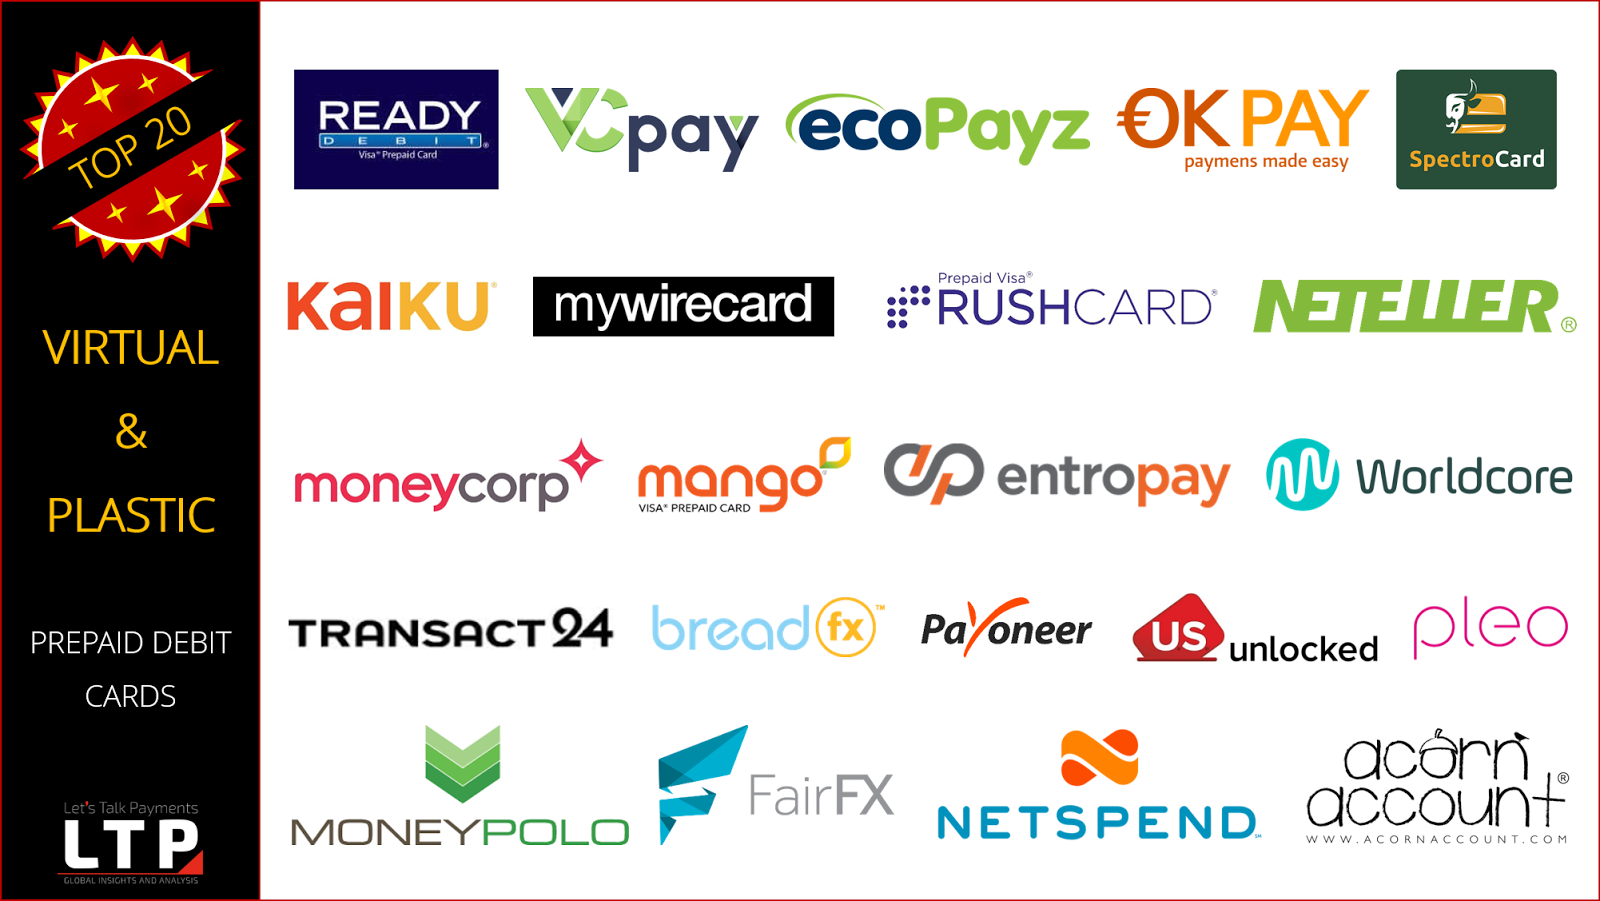 Top 20 Virtual/Plastic Prepaid Debit Cards for Travel